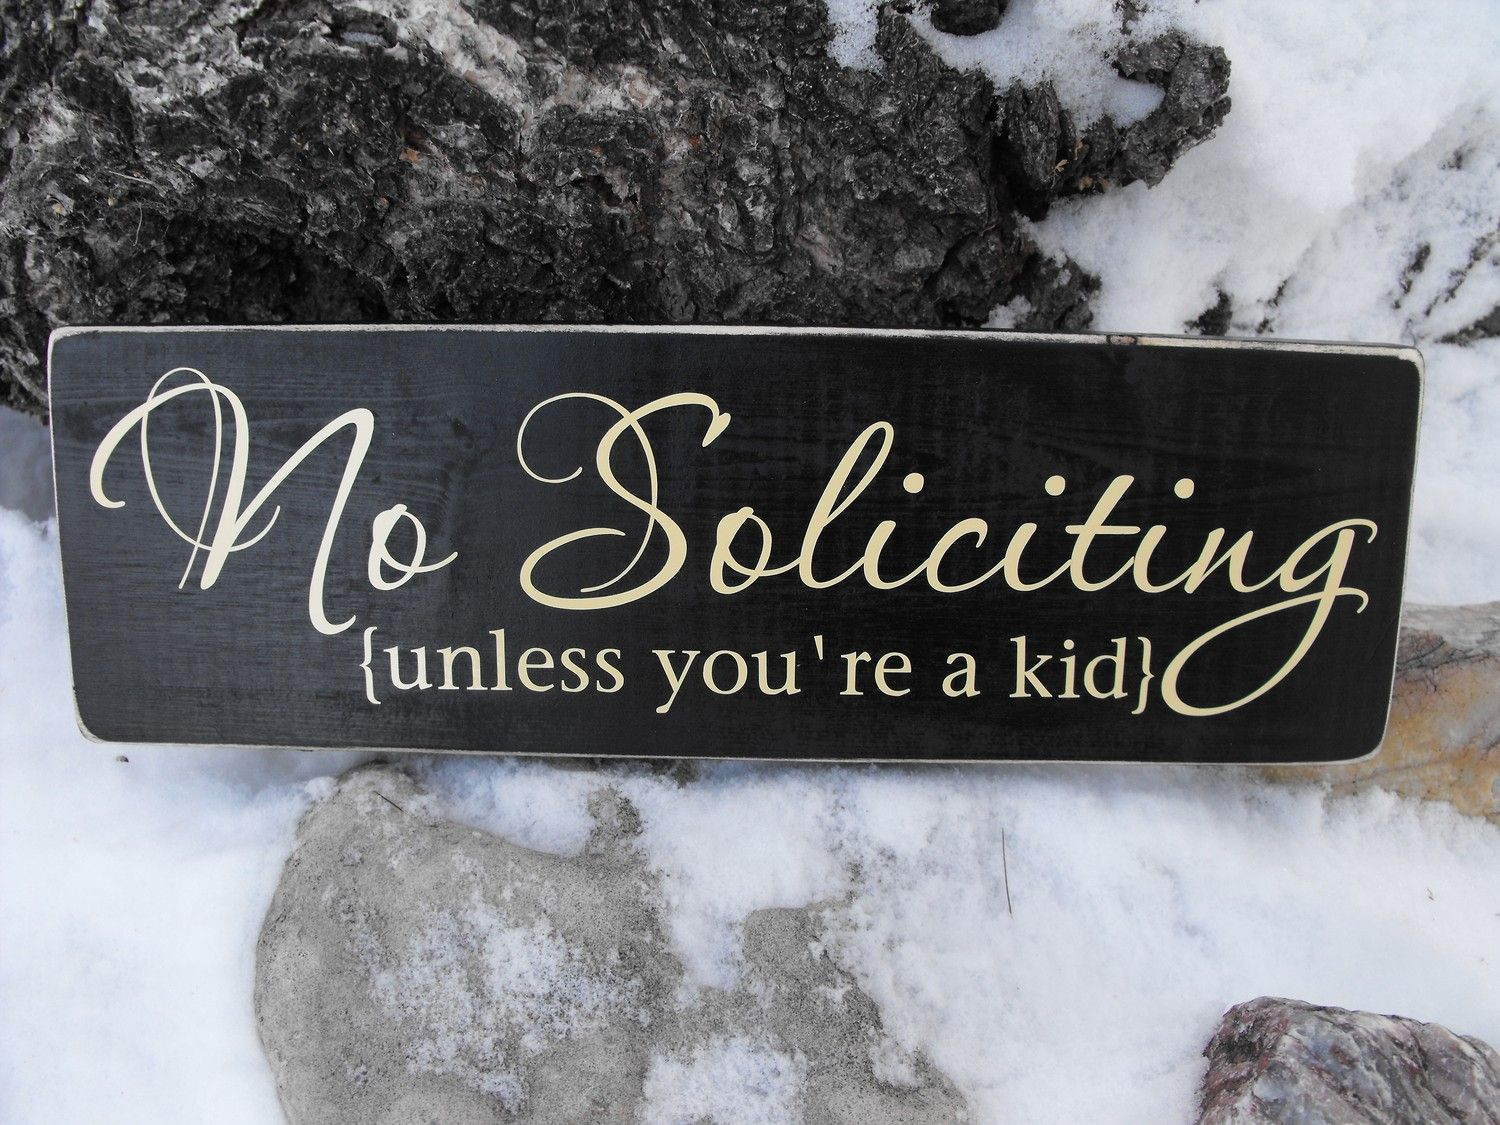 Great sign...and so true!